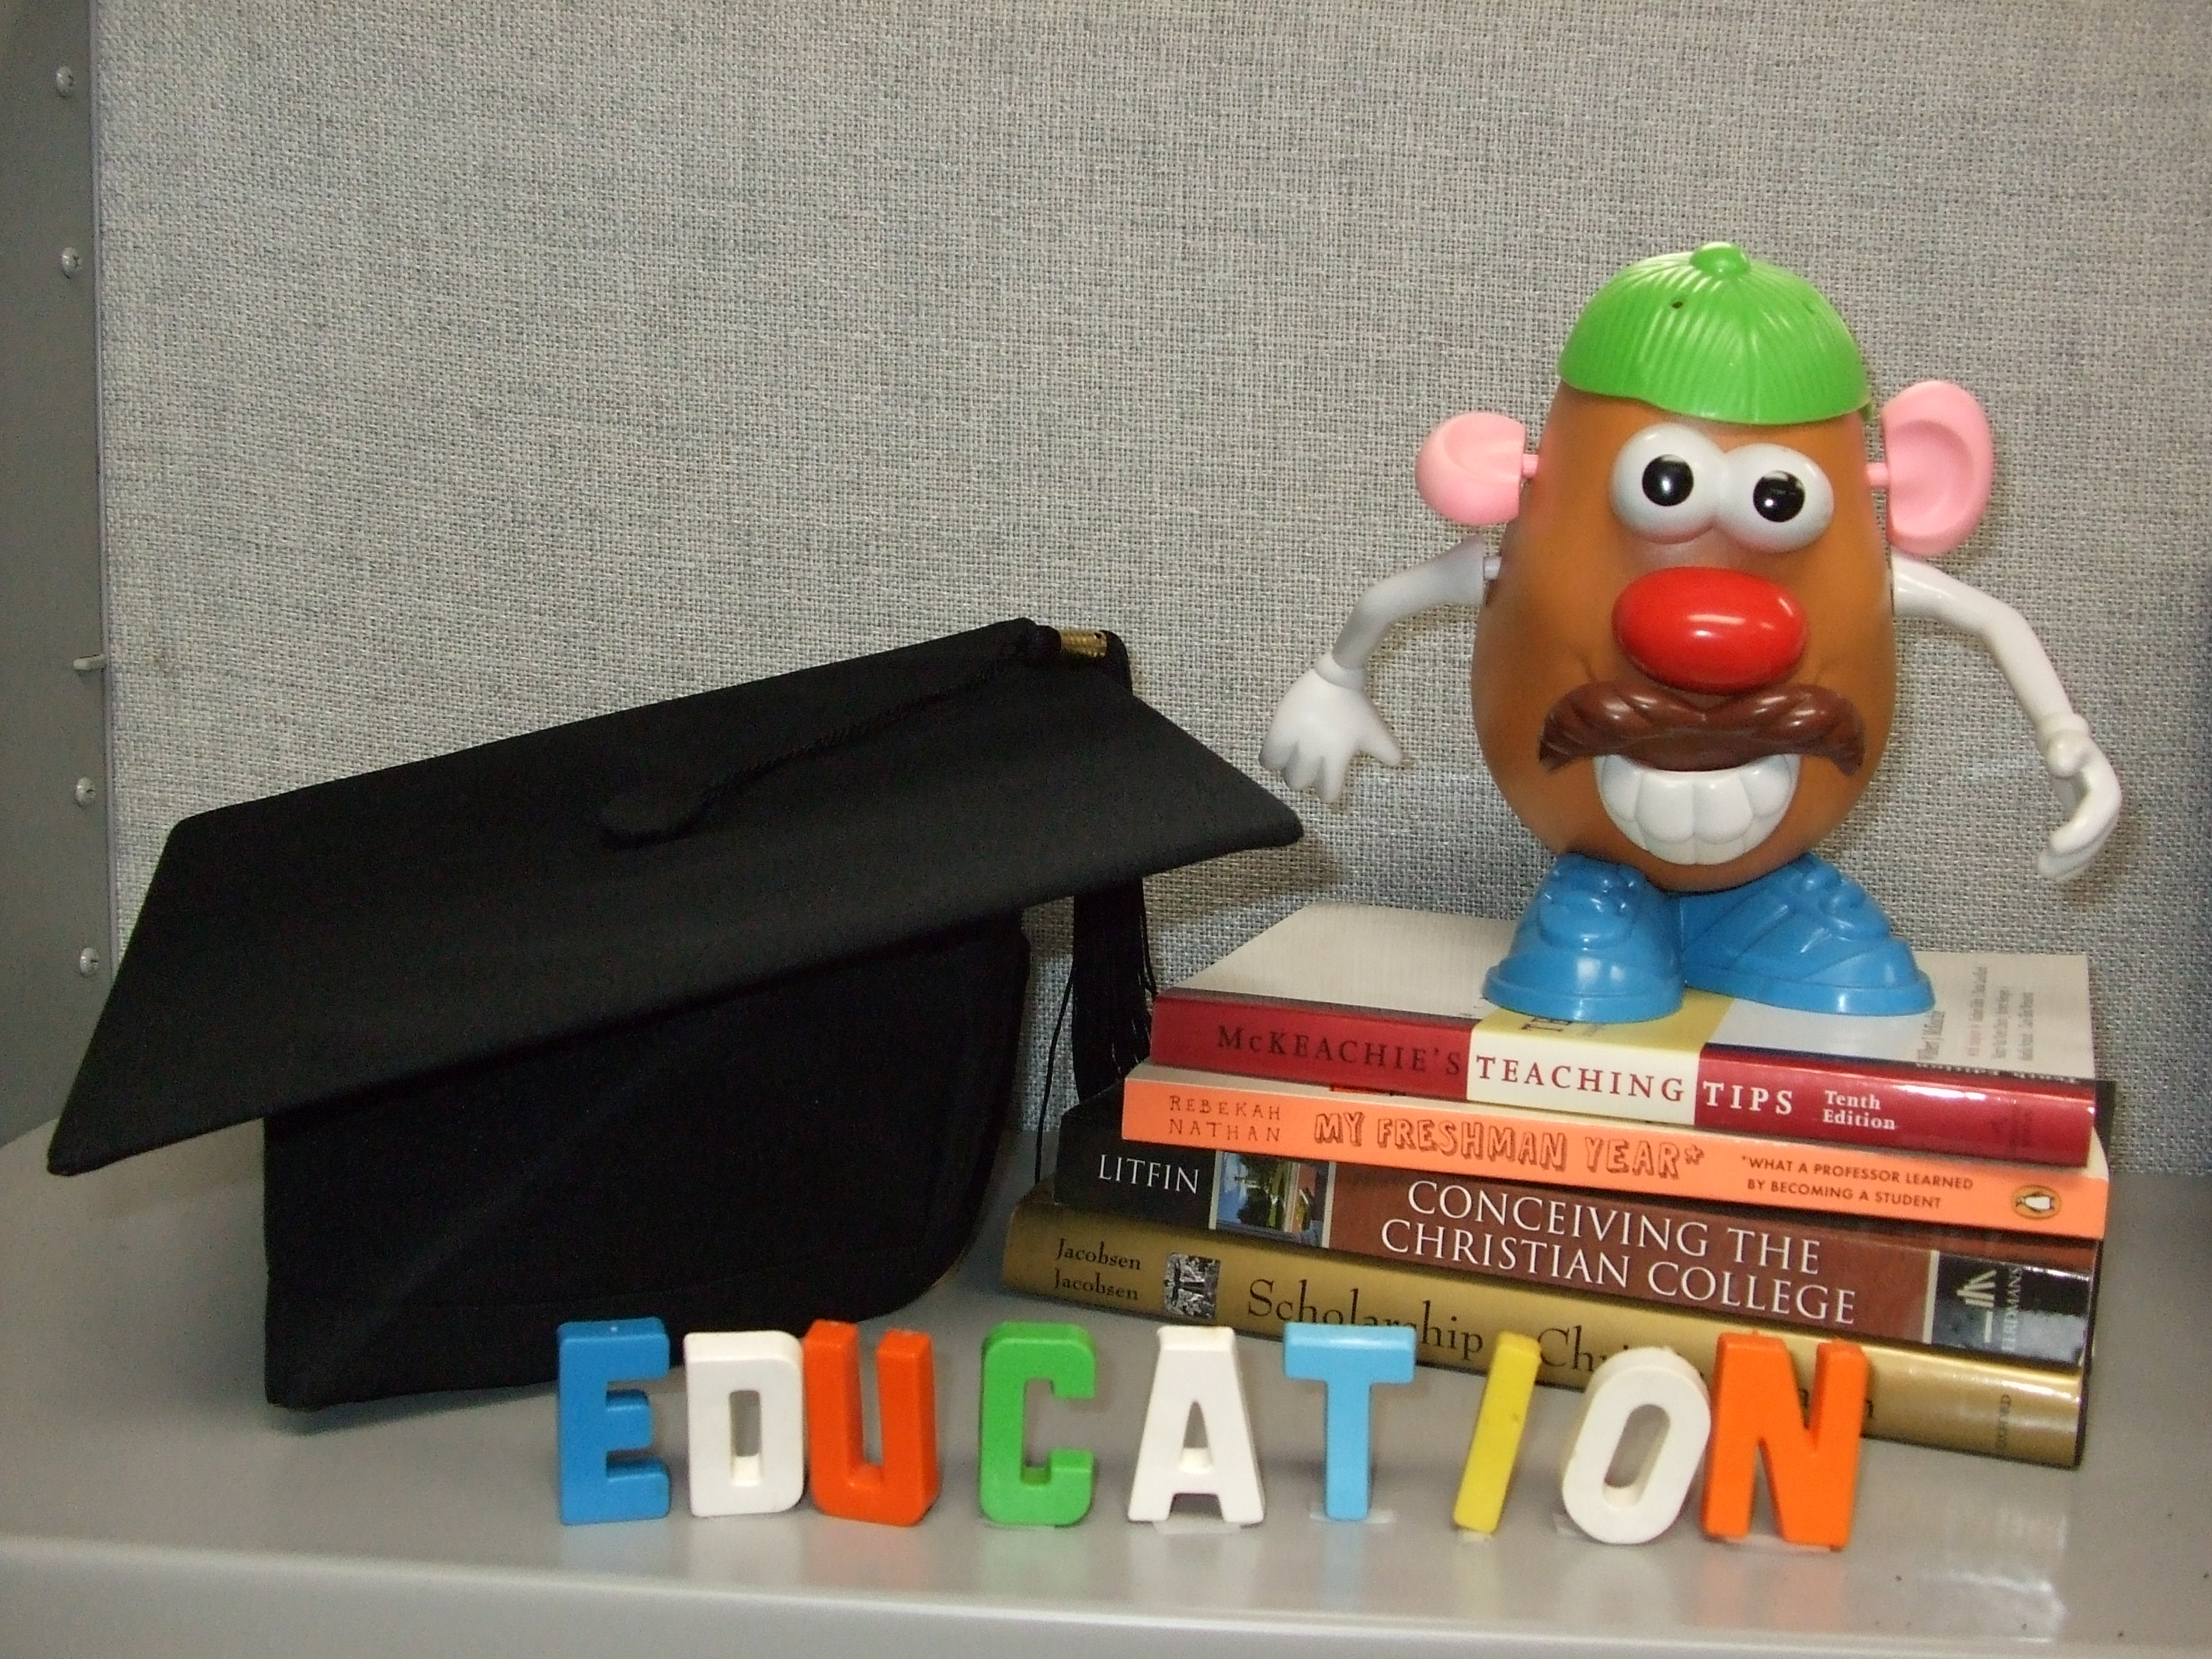 Mr. Potato Head on stack of books